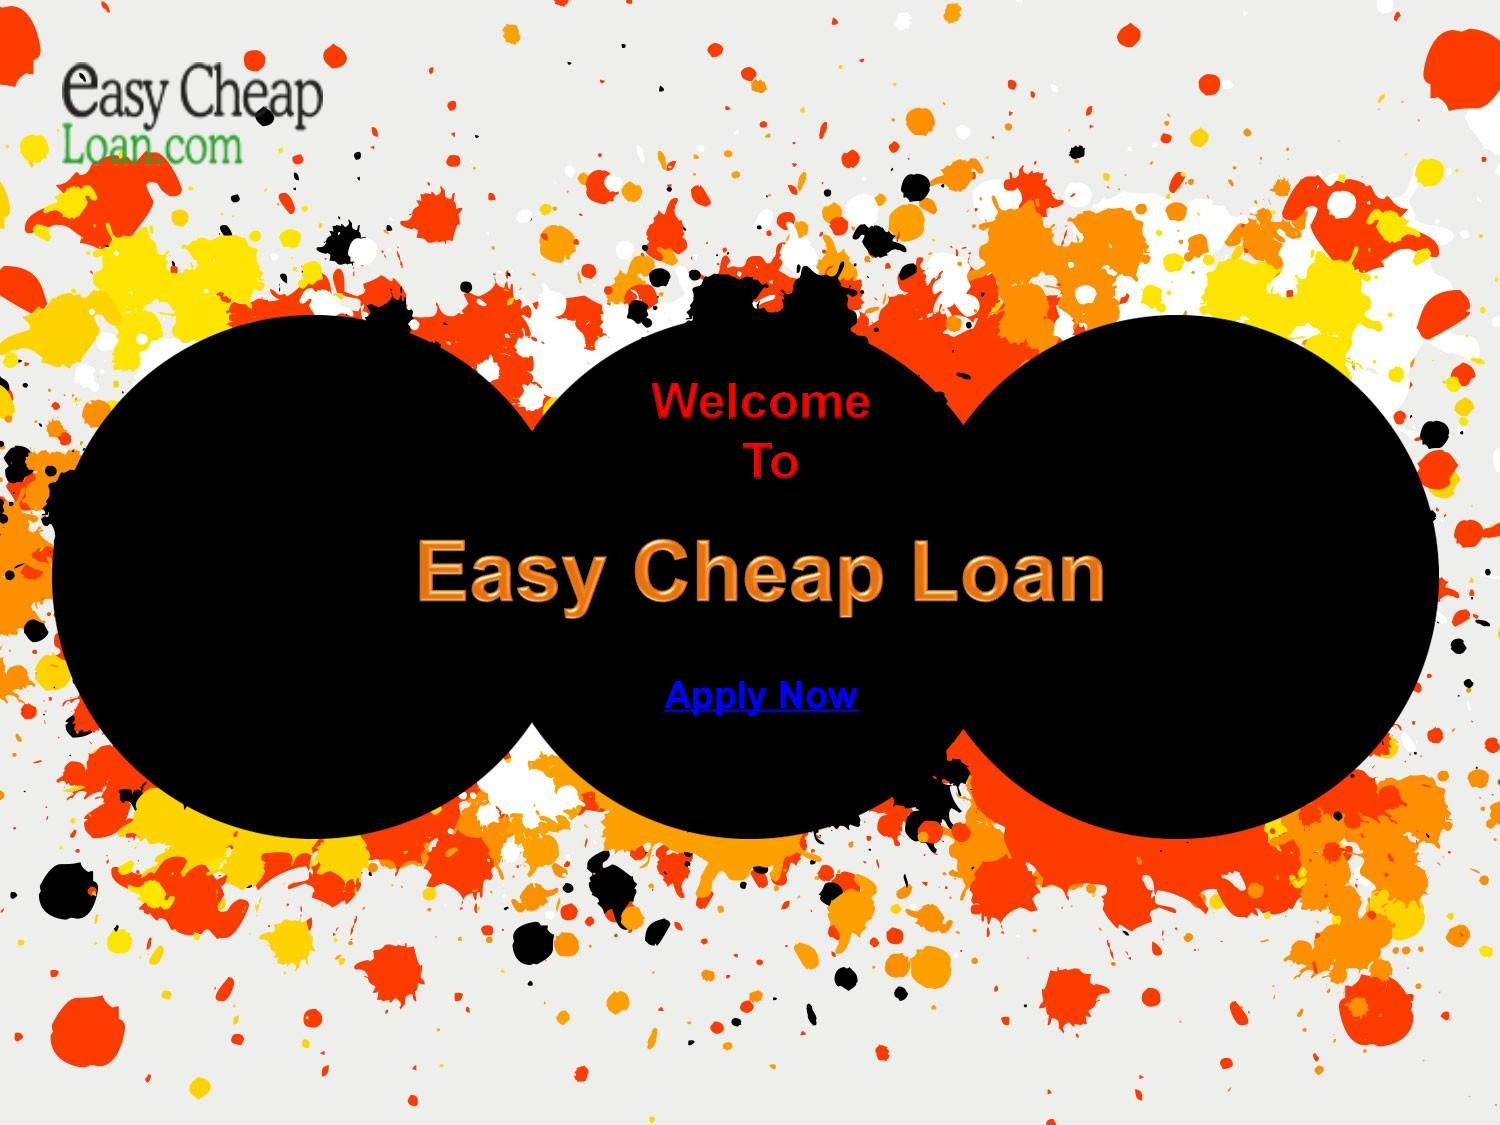 We Offer No Guarantor Loans On Affordable Interest Rates With Easy Repayment Terms Powerpoint Template Free Template Design Professional Powerpoint Templates